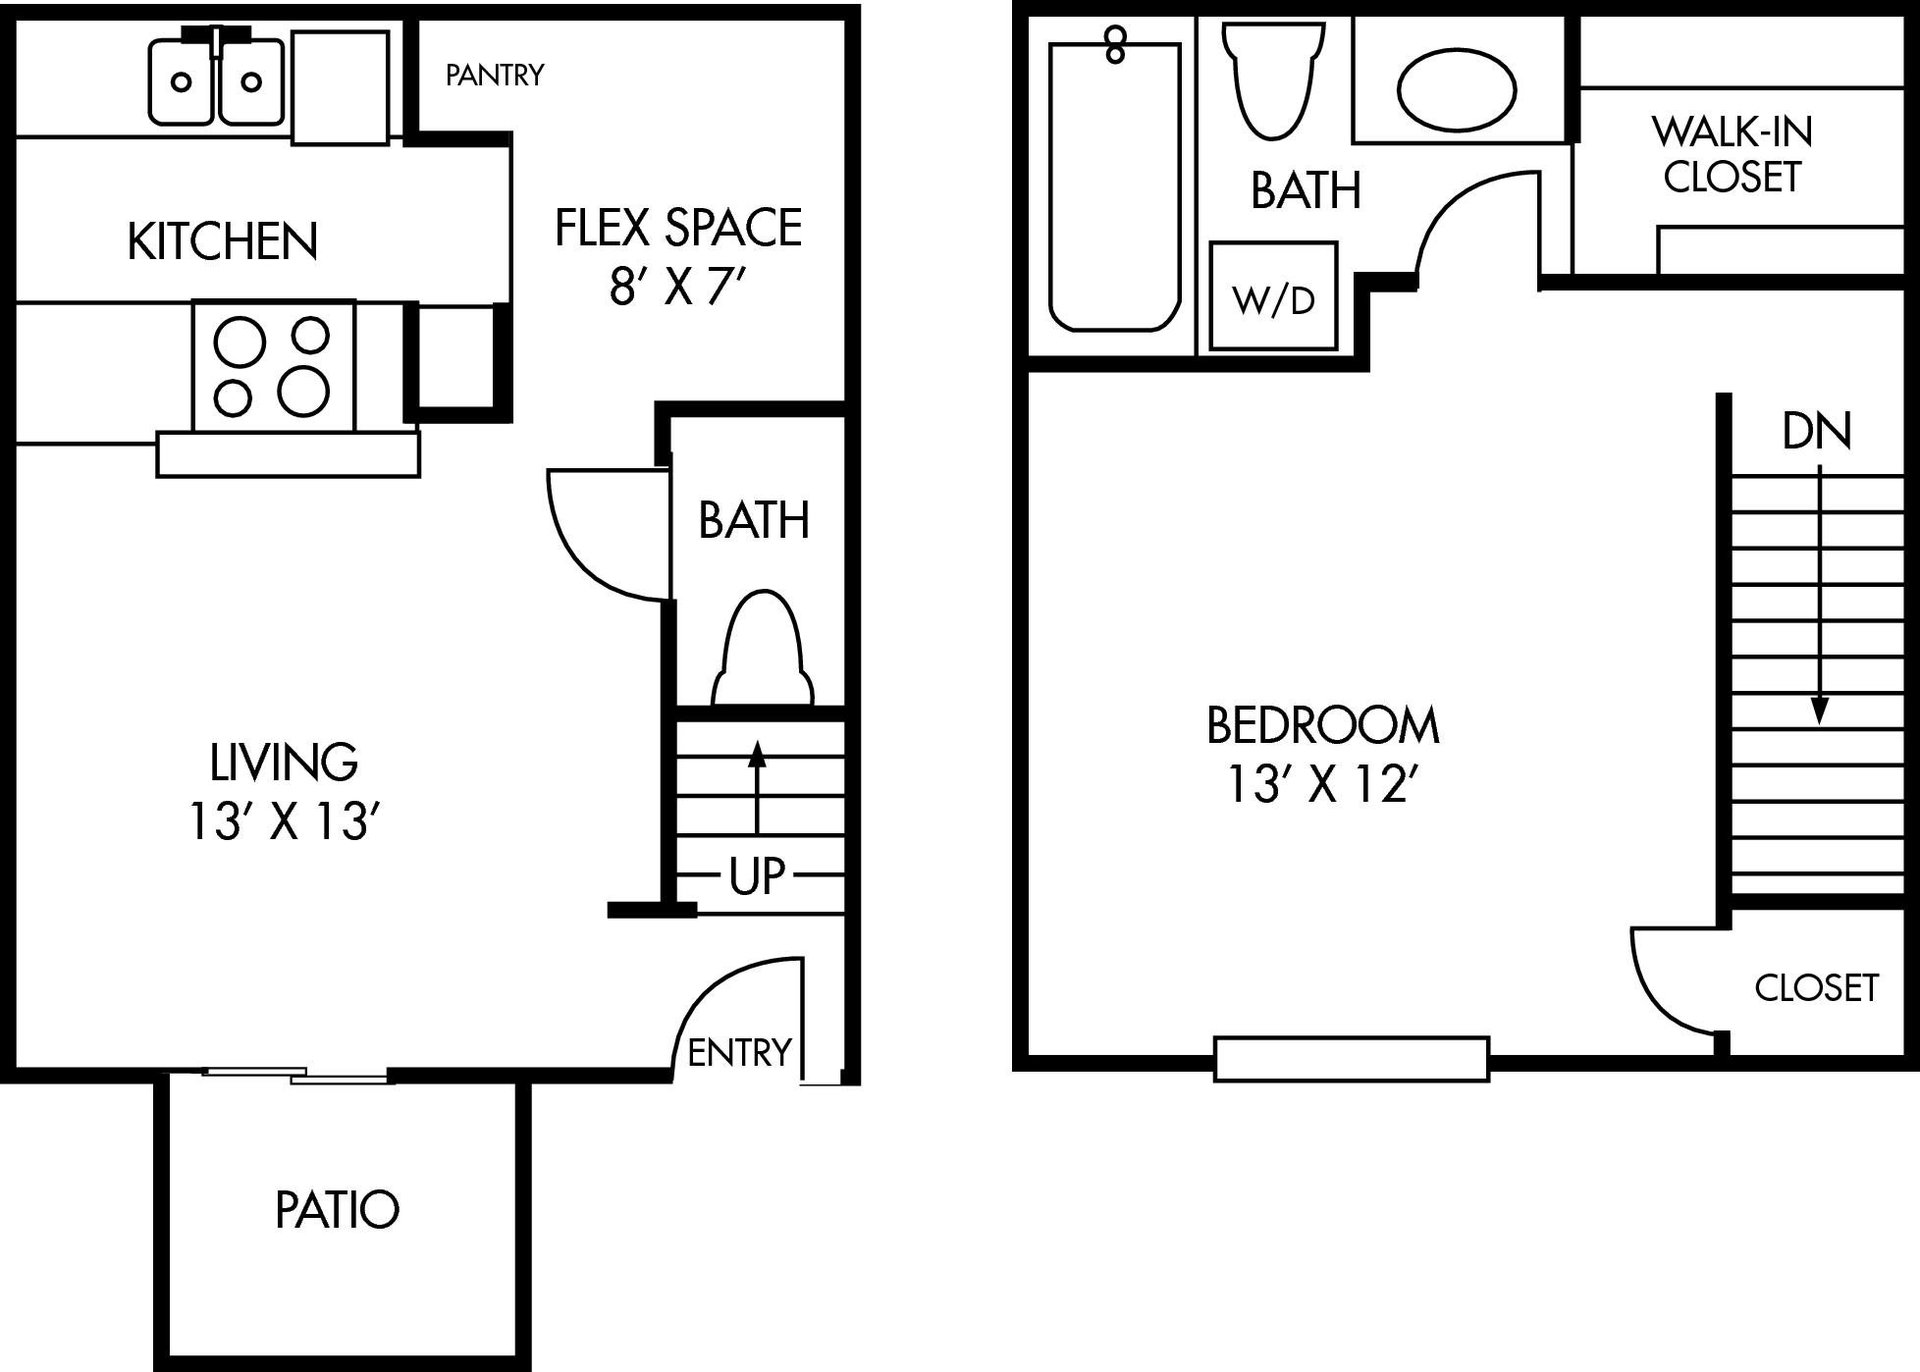 Two Story Houston Salado at Cityview Floor Plan 1 bed 1 bath